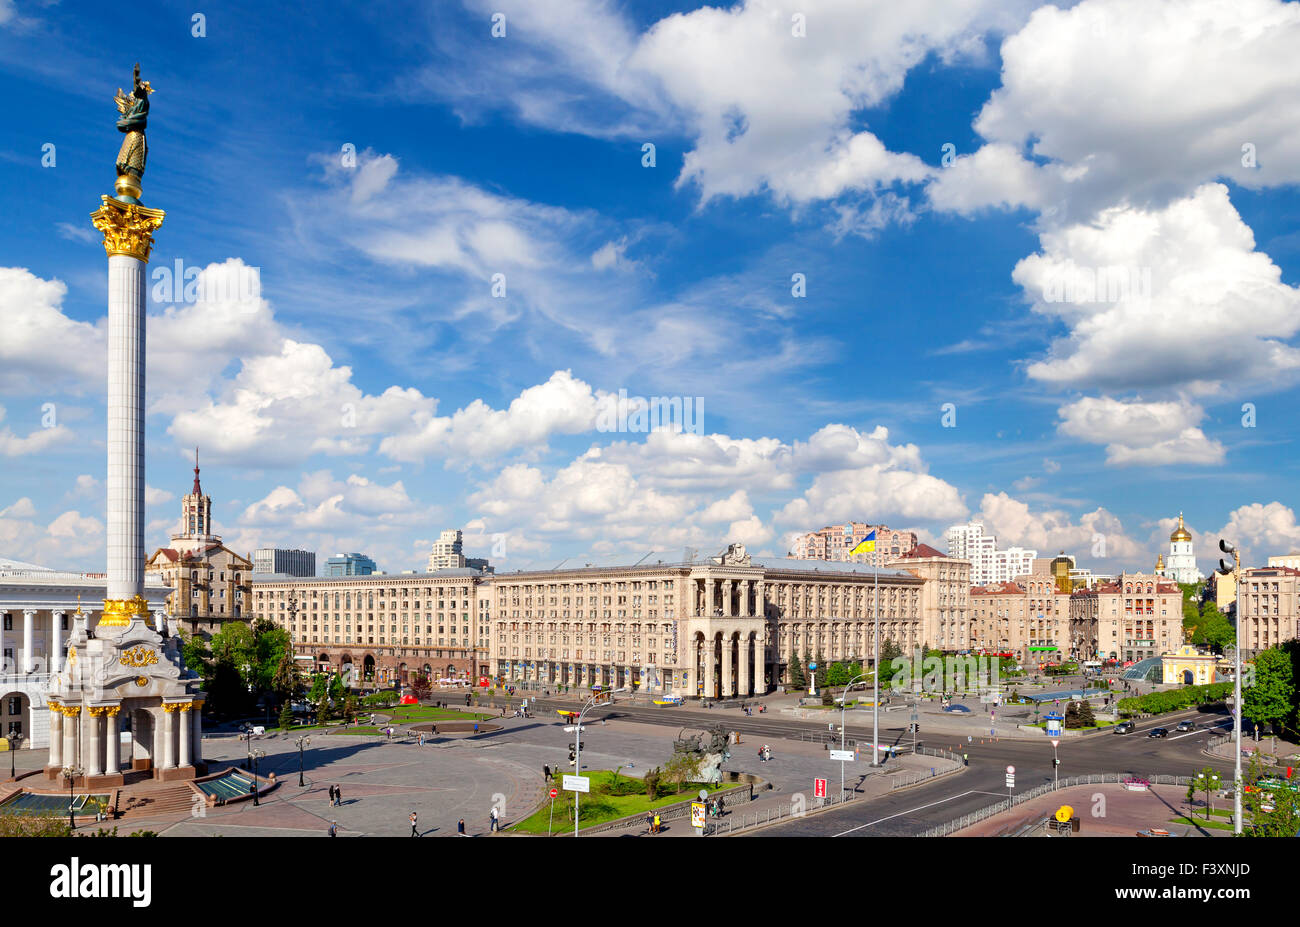 Central square of Kiev, Ukraine - Stock Image